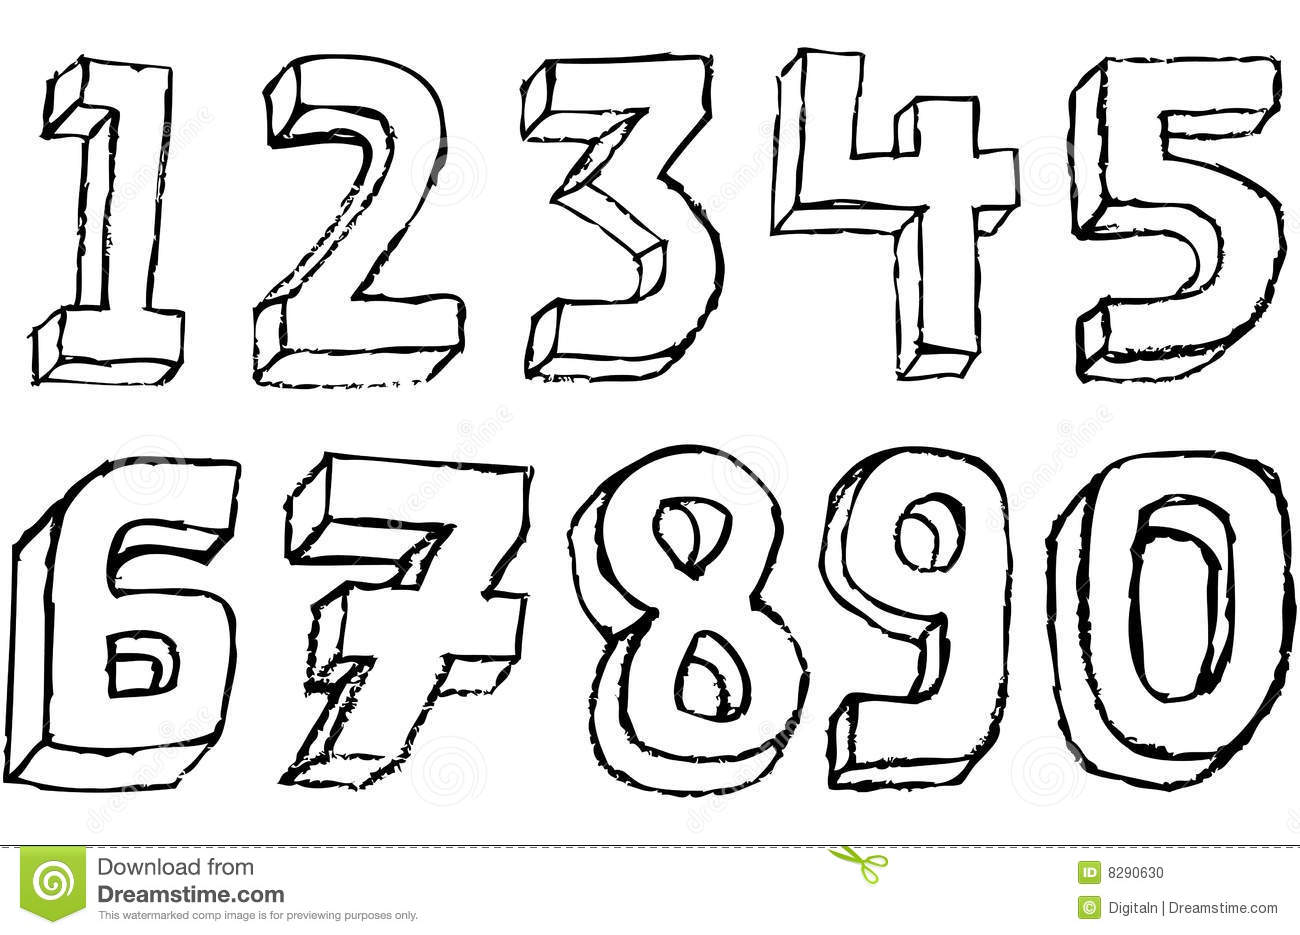 3 digit lottery number m design photography